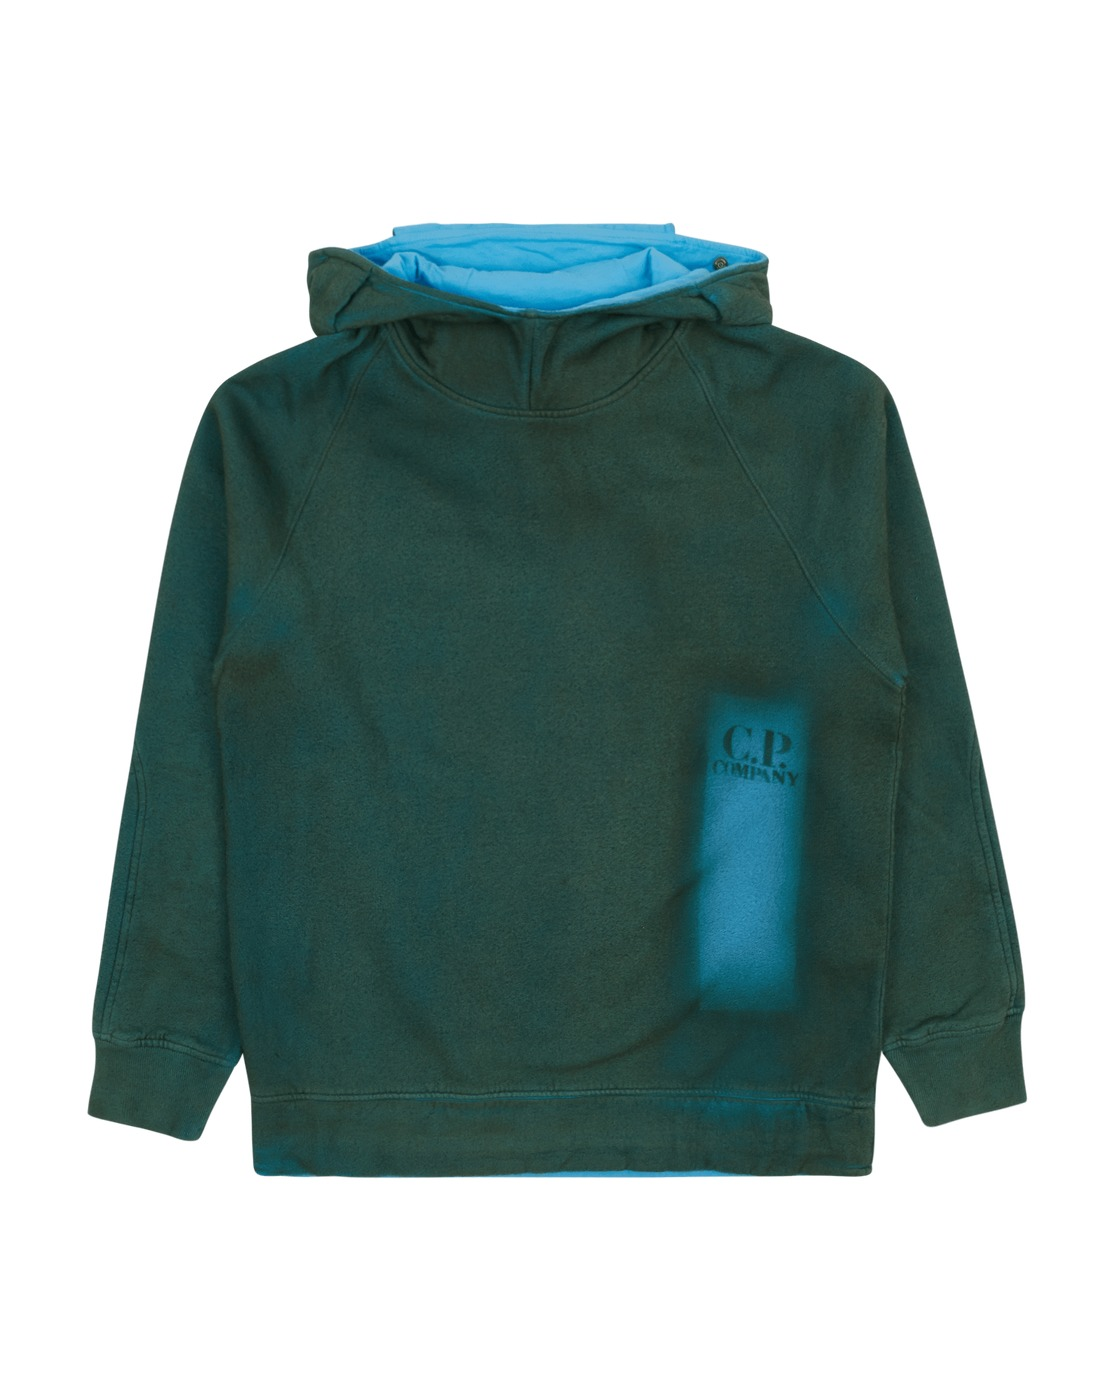 Photo: C.P. Company P.Ri.S.M. Hooded Sweatshirt Var.01